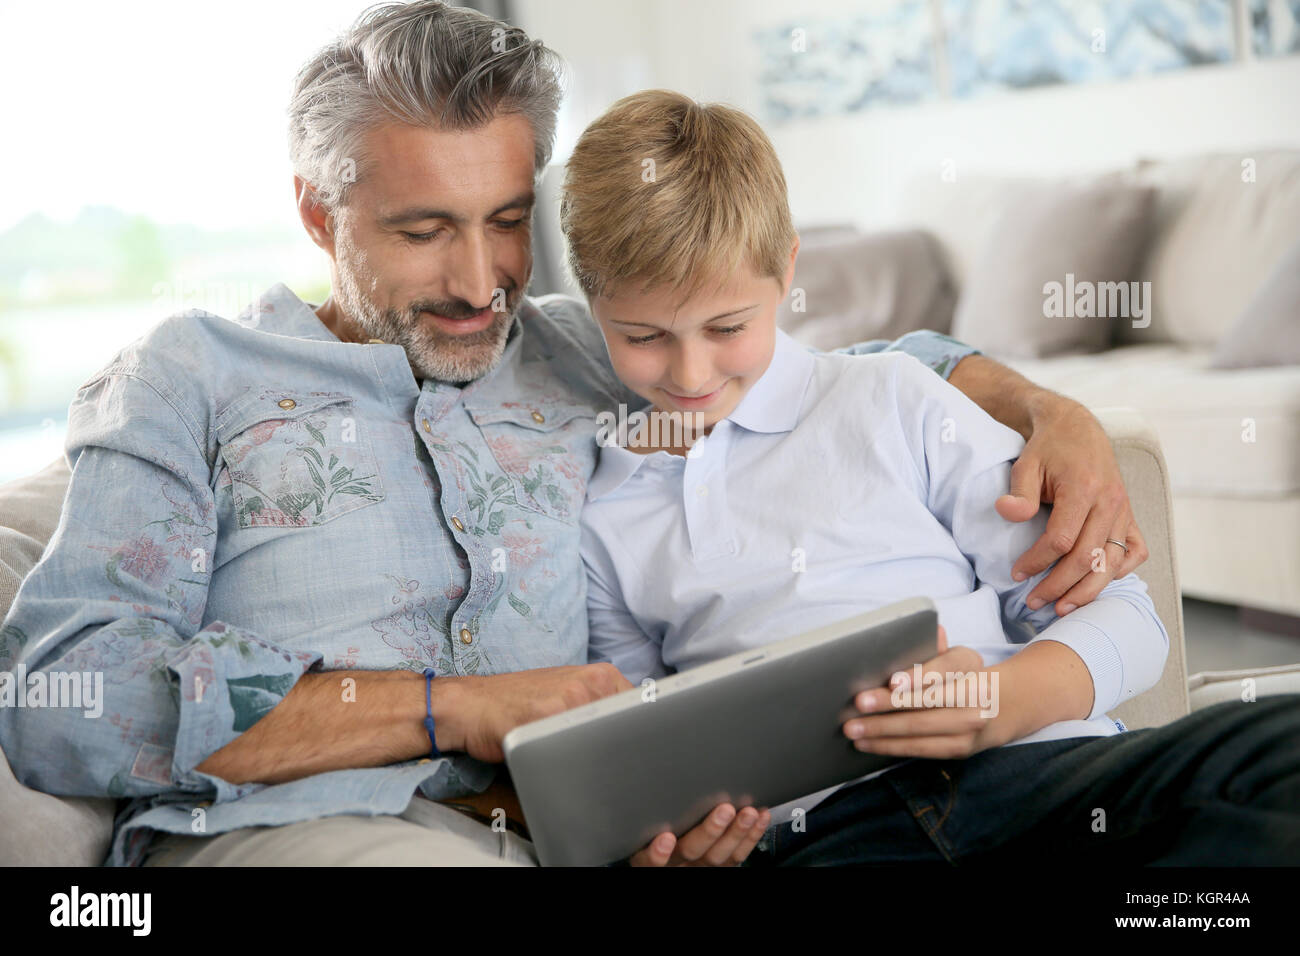 Father and son using digital tablet at home - Stock Image